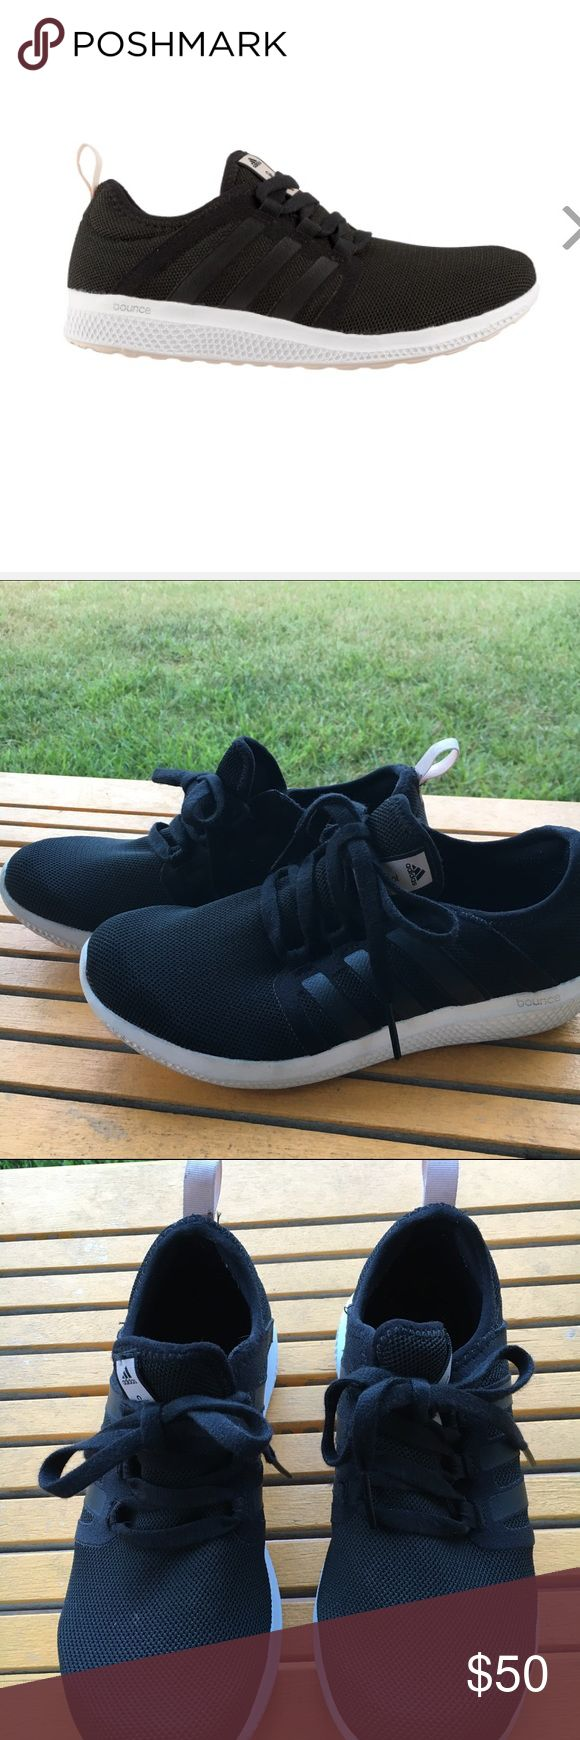 ✨BLACK ADIDAS BOUNCE RUNNING SHOE✨ comfy casual & versatile shoe✨ adidas Shoes Athletic Shoes